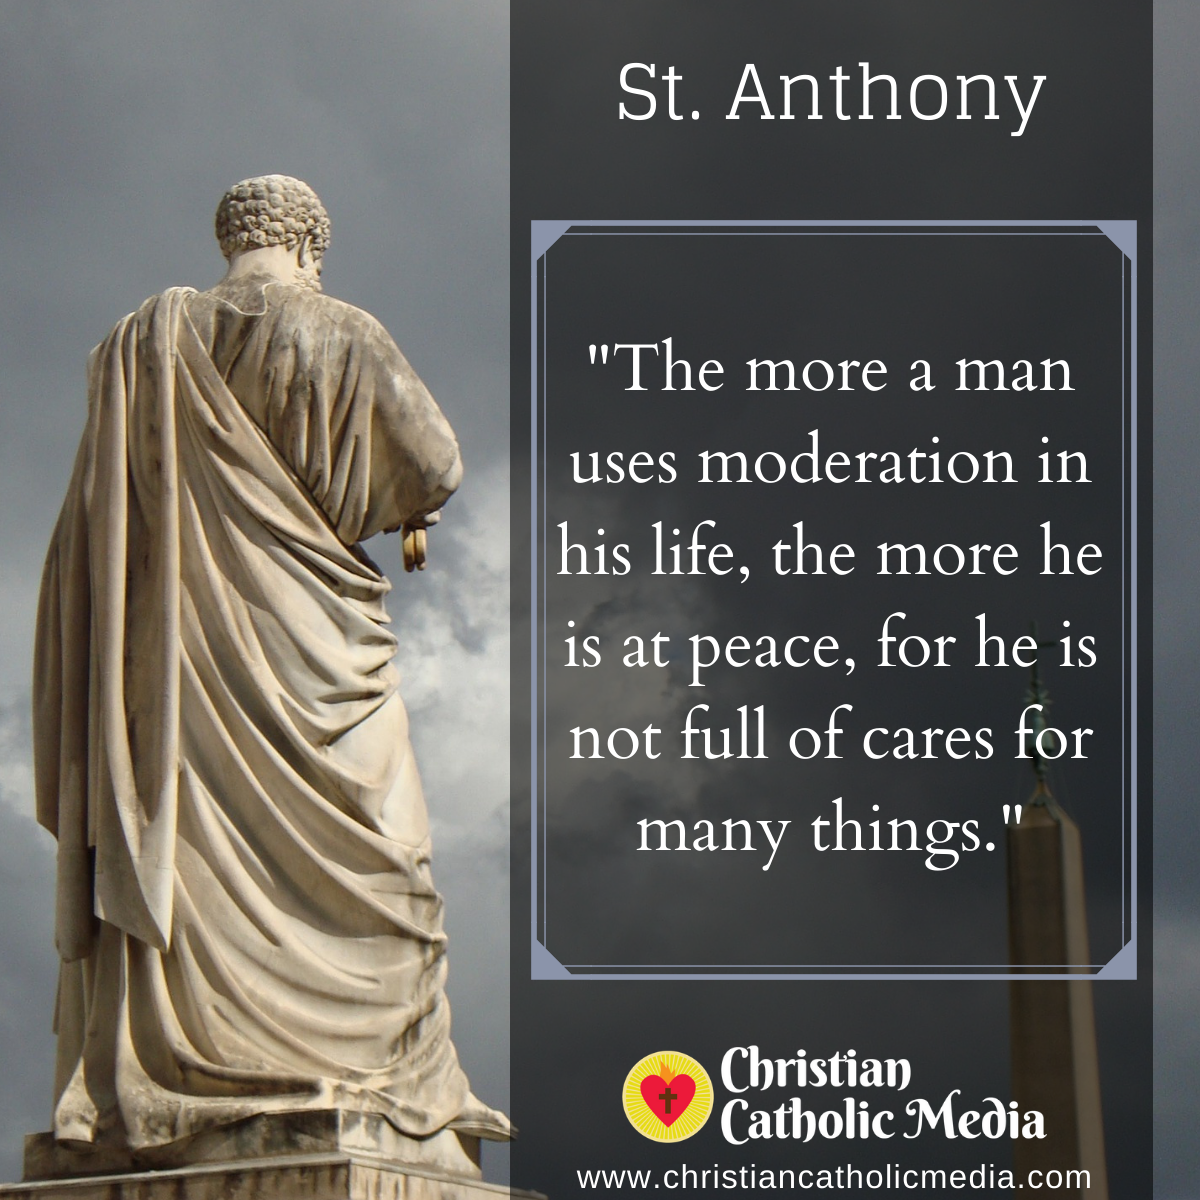 St. Anthony - Saturday August 29, 2020